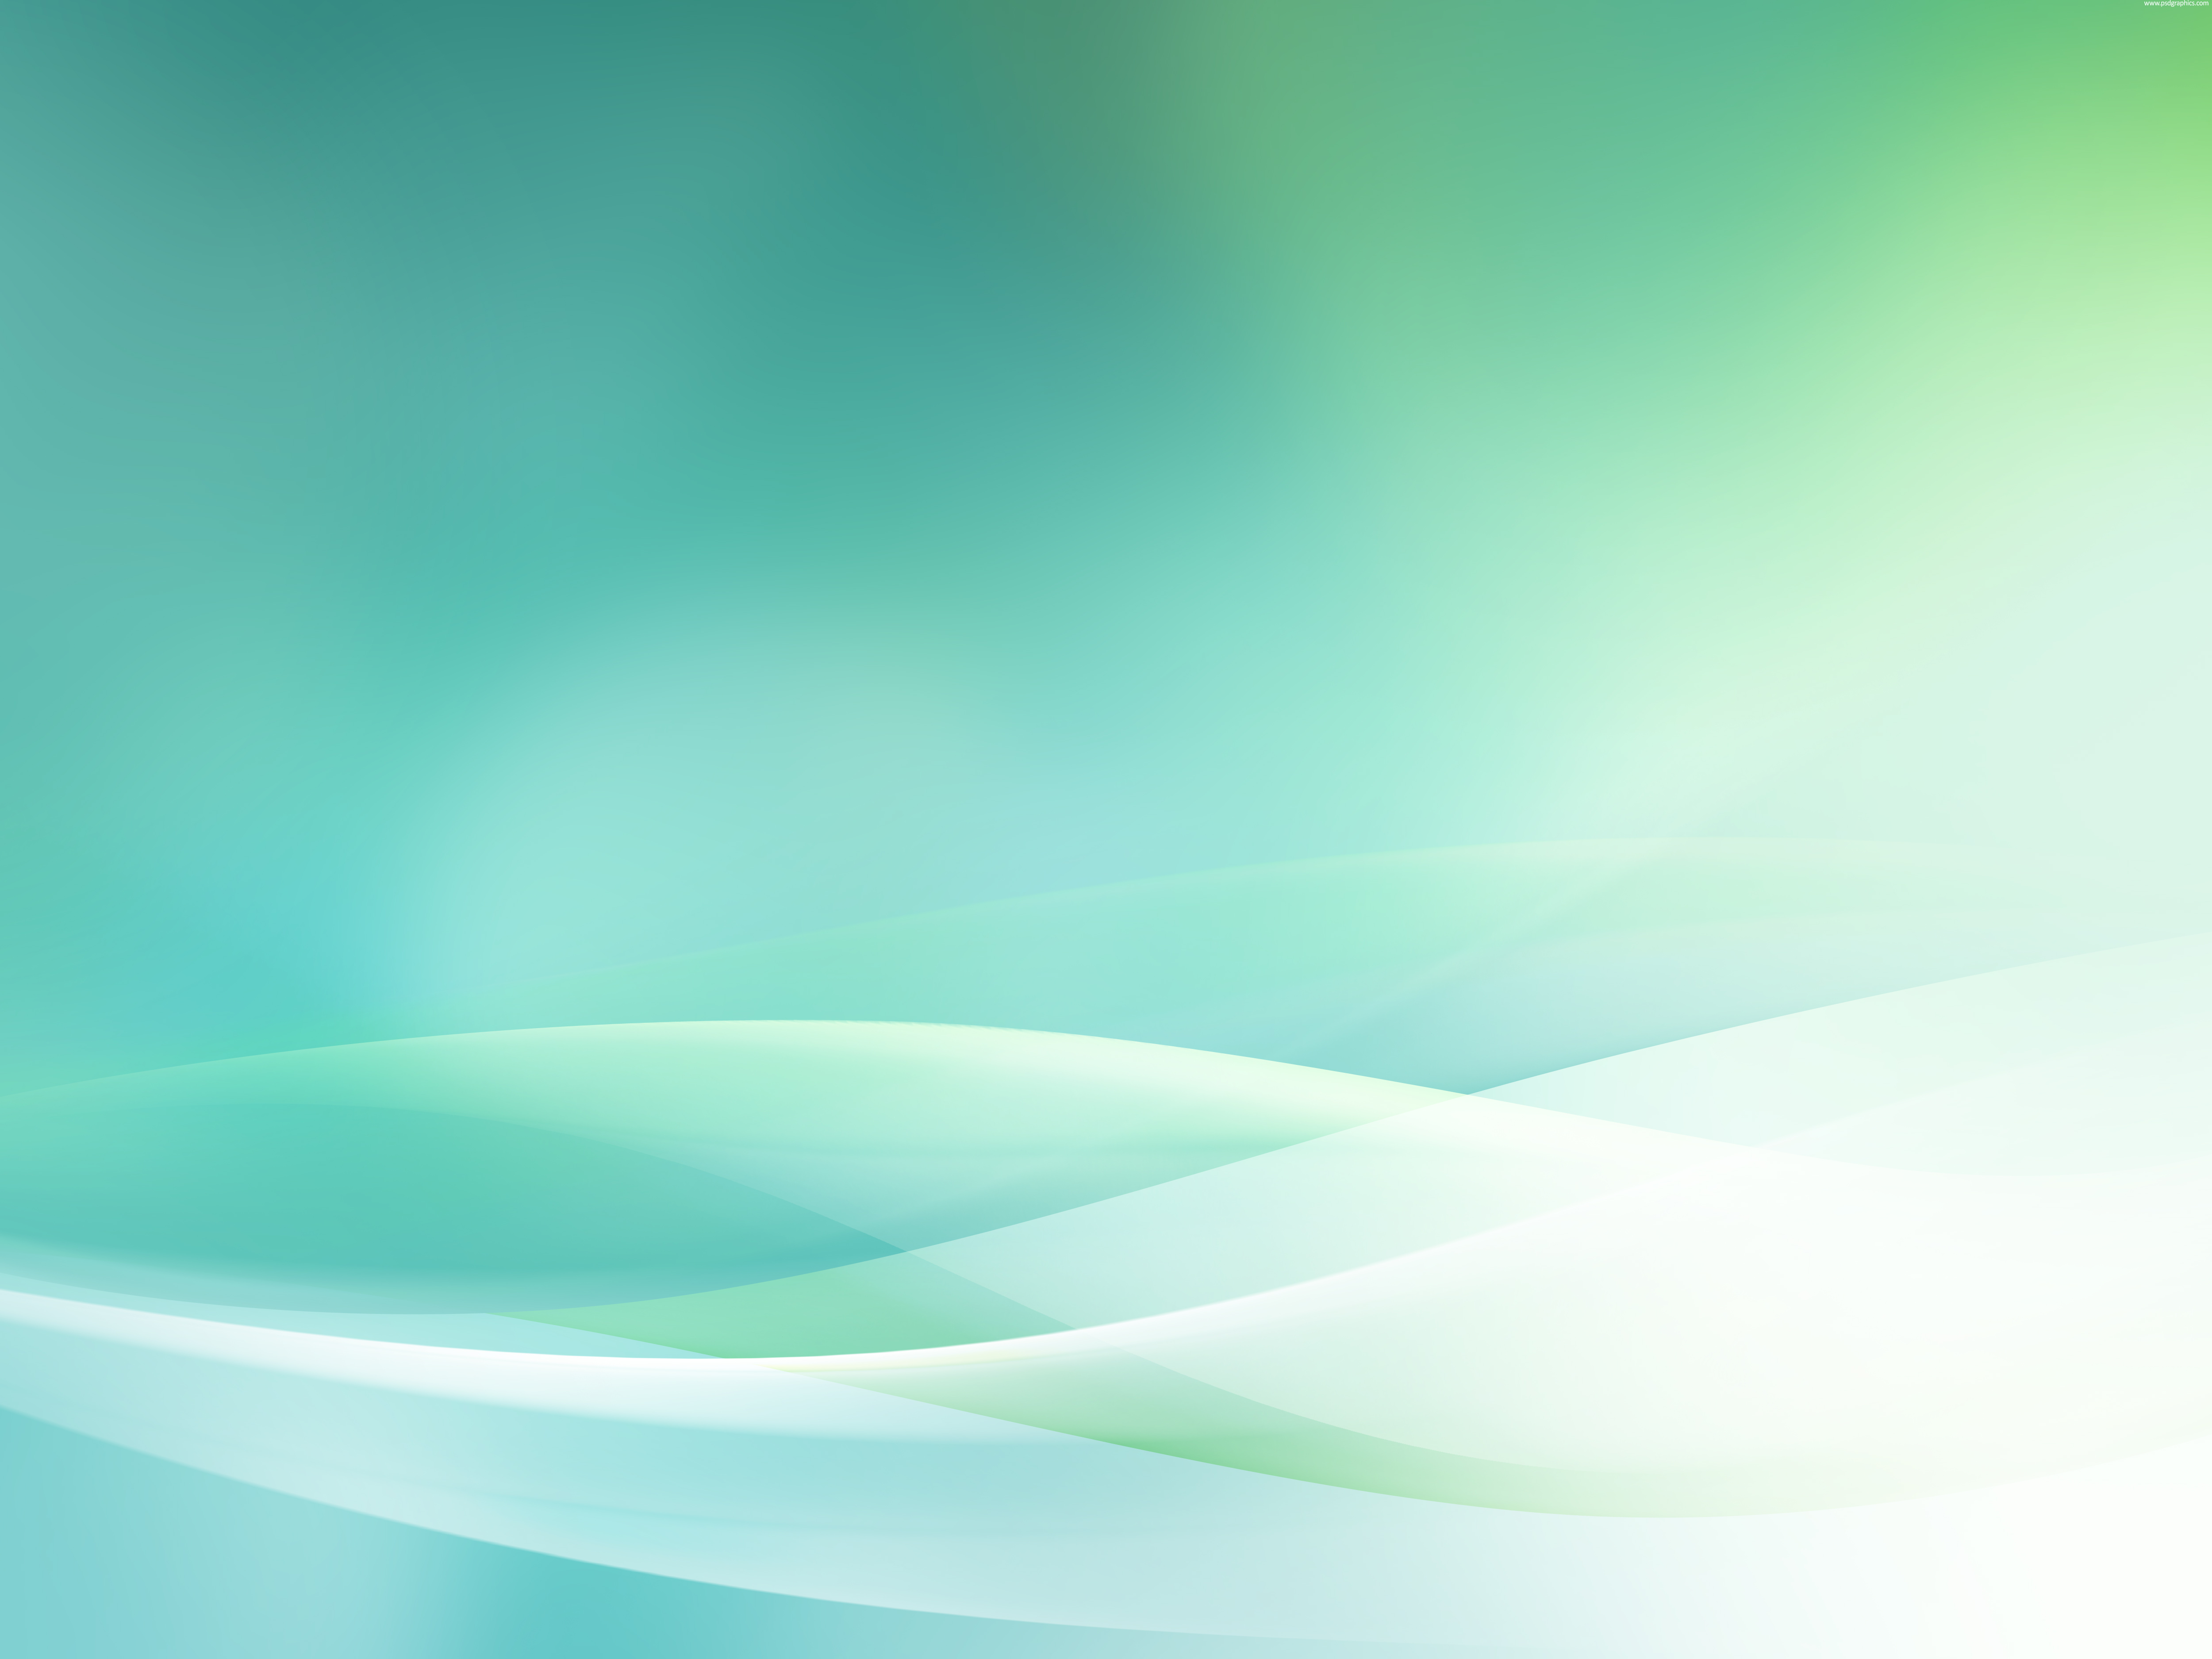 Abstract Green Spring Background Eco Friendly Green Background Soft